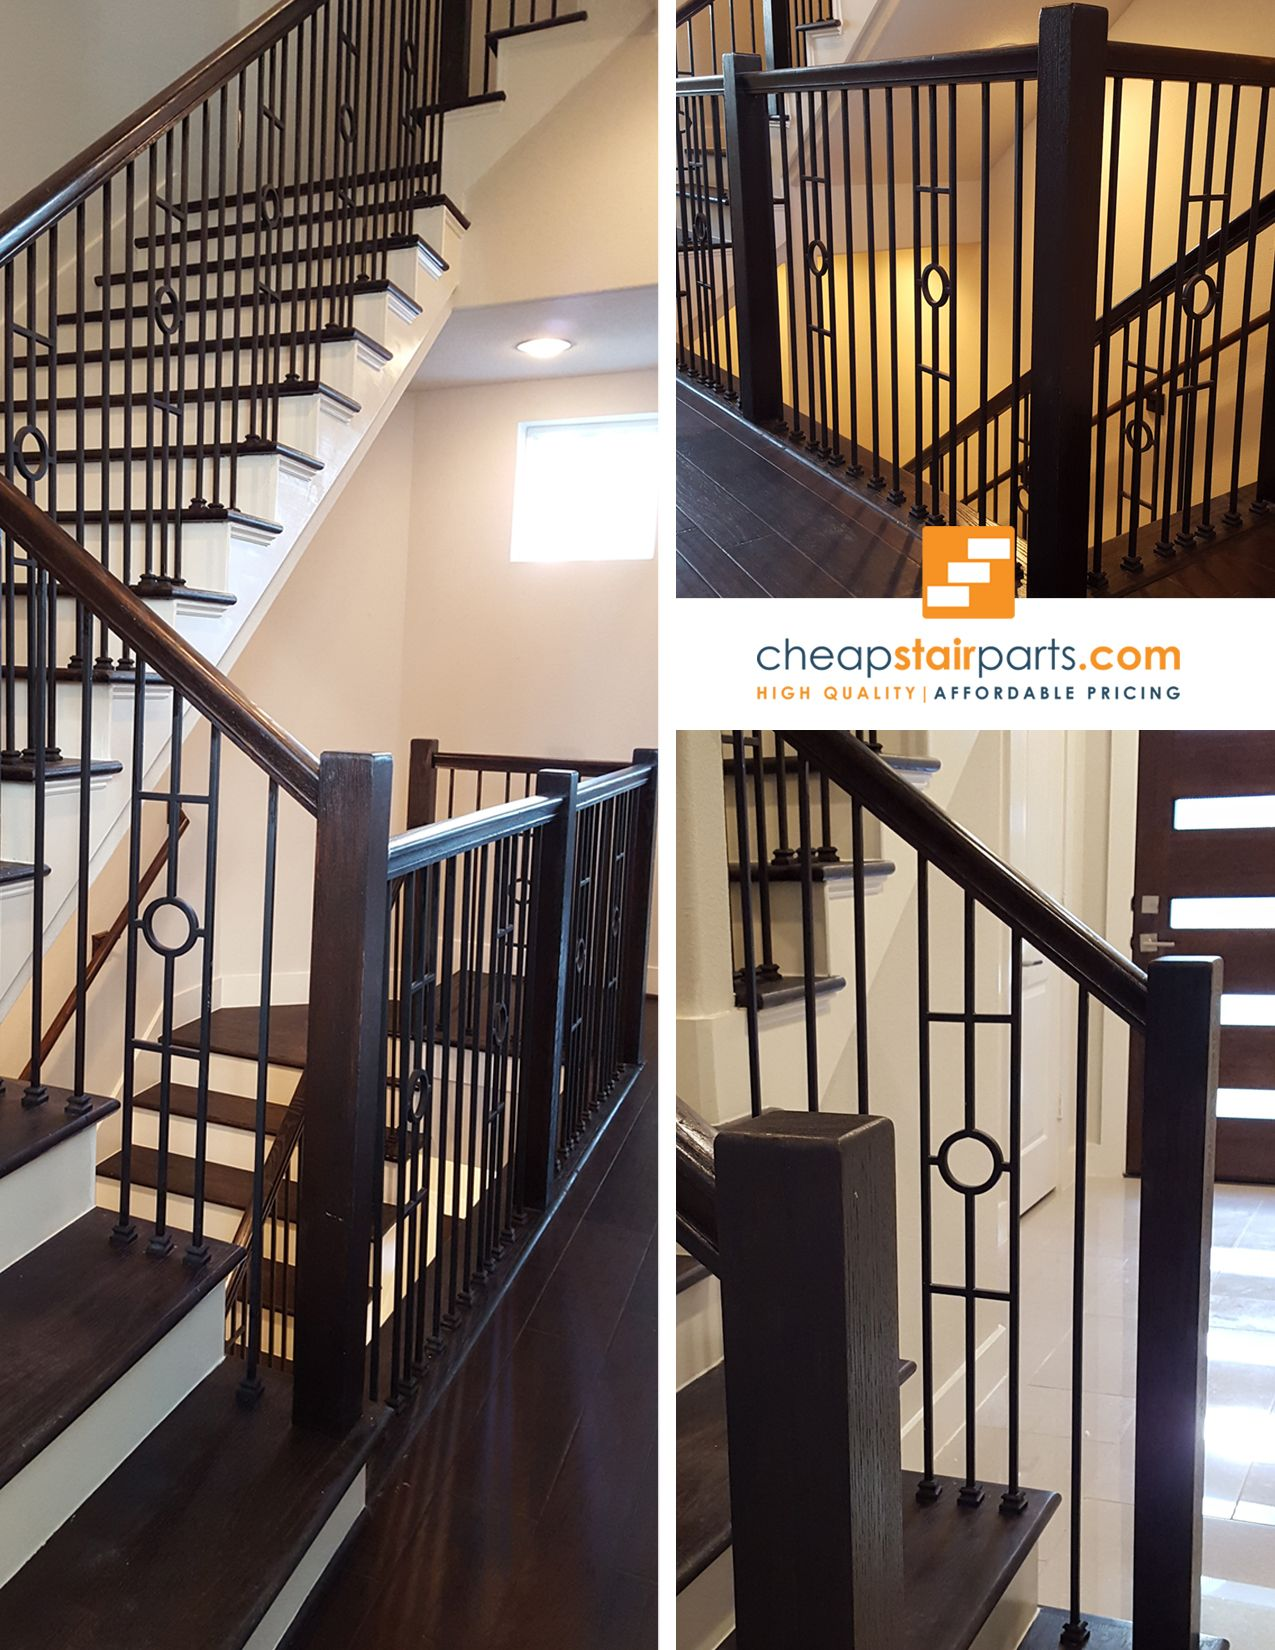 High Quality Stair Parts Used In New Staircase Construction And Home Stair  Remodel. Buy Online Industry Standard Iron Balusters, Newel Posts, Handrail  And ...